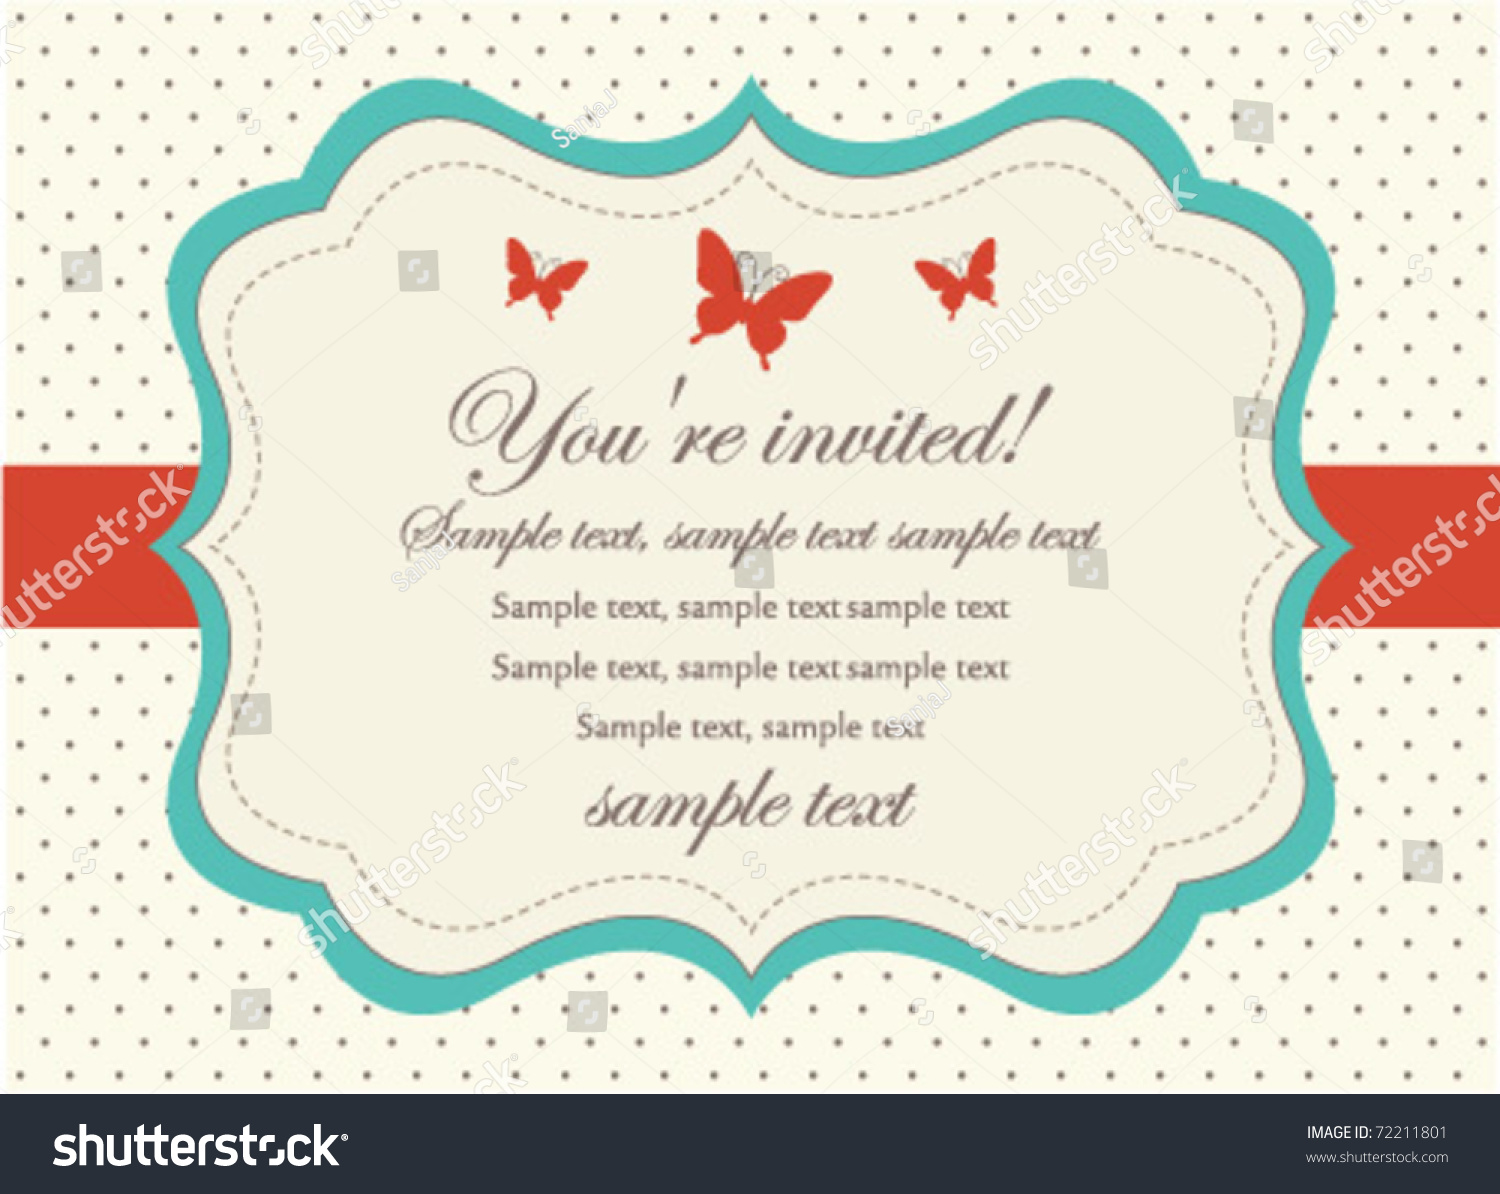 Retro Invitation Card Stock Vector 72211801 - Shutterstock